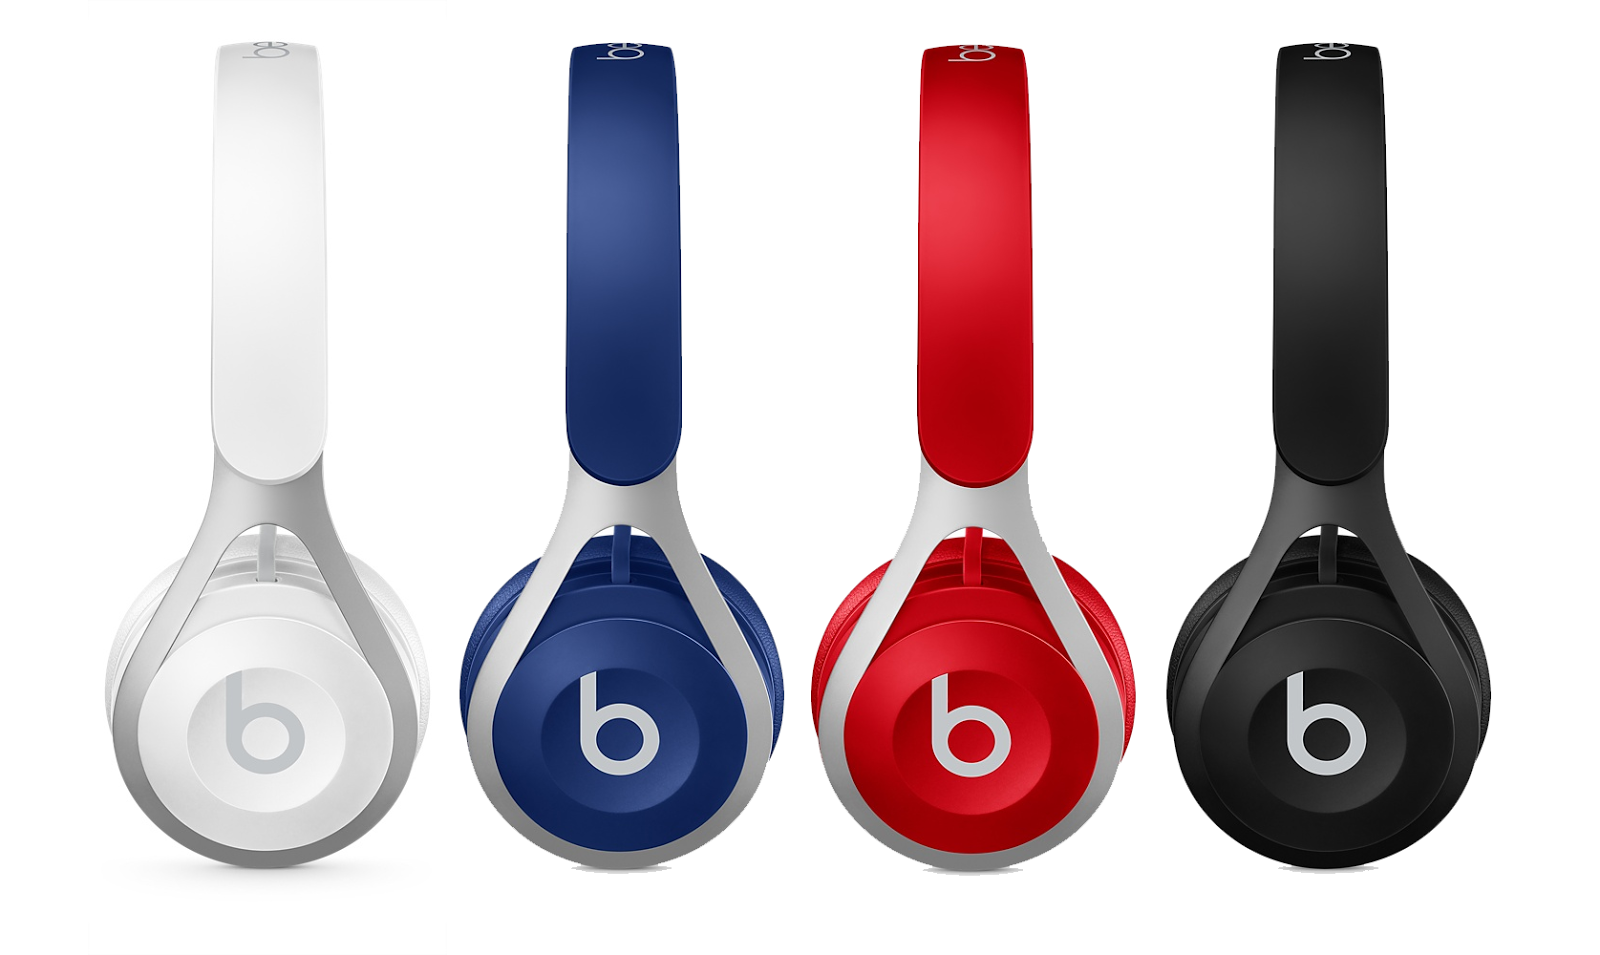 Beats EP available in four colors